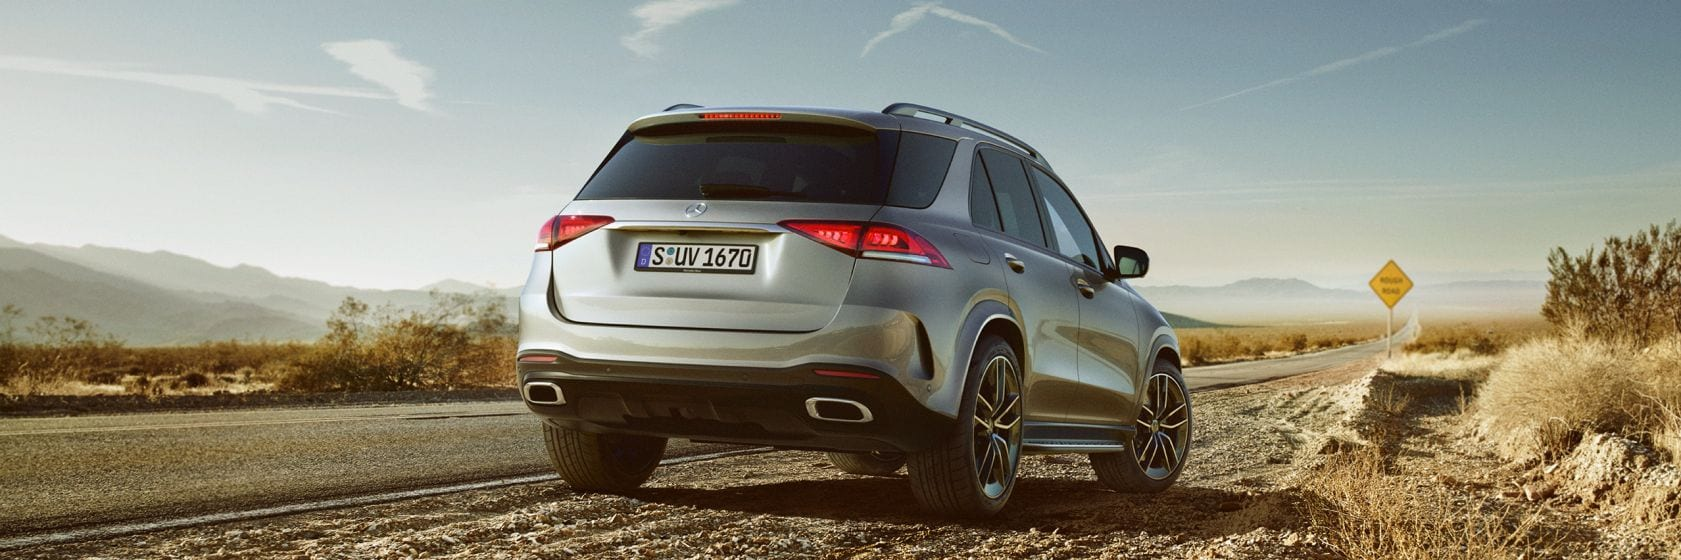 Дизайн Mercedes-Benz GLE